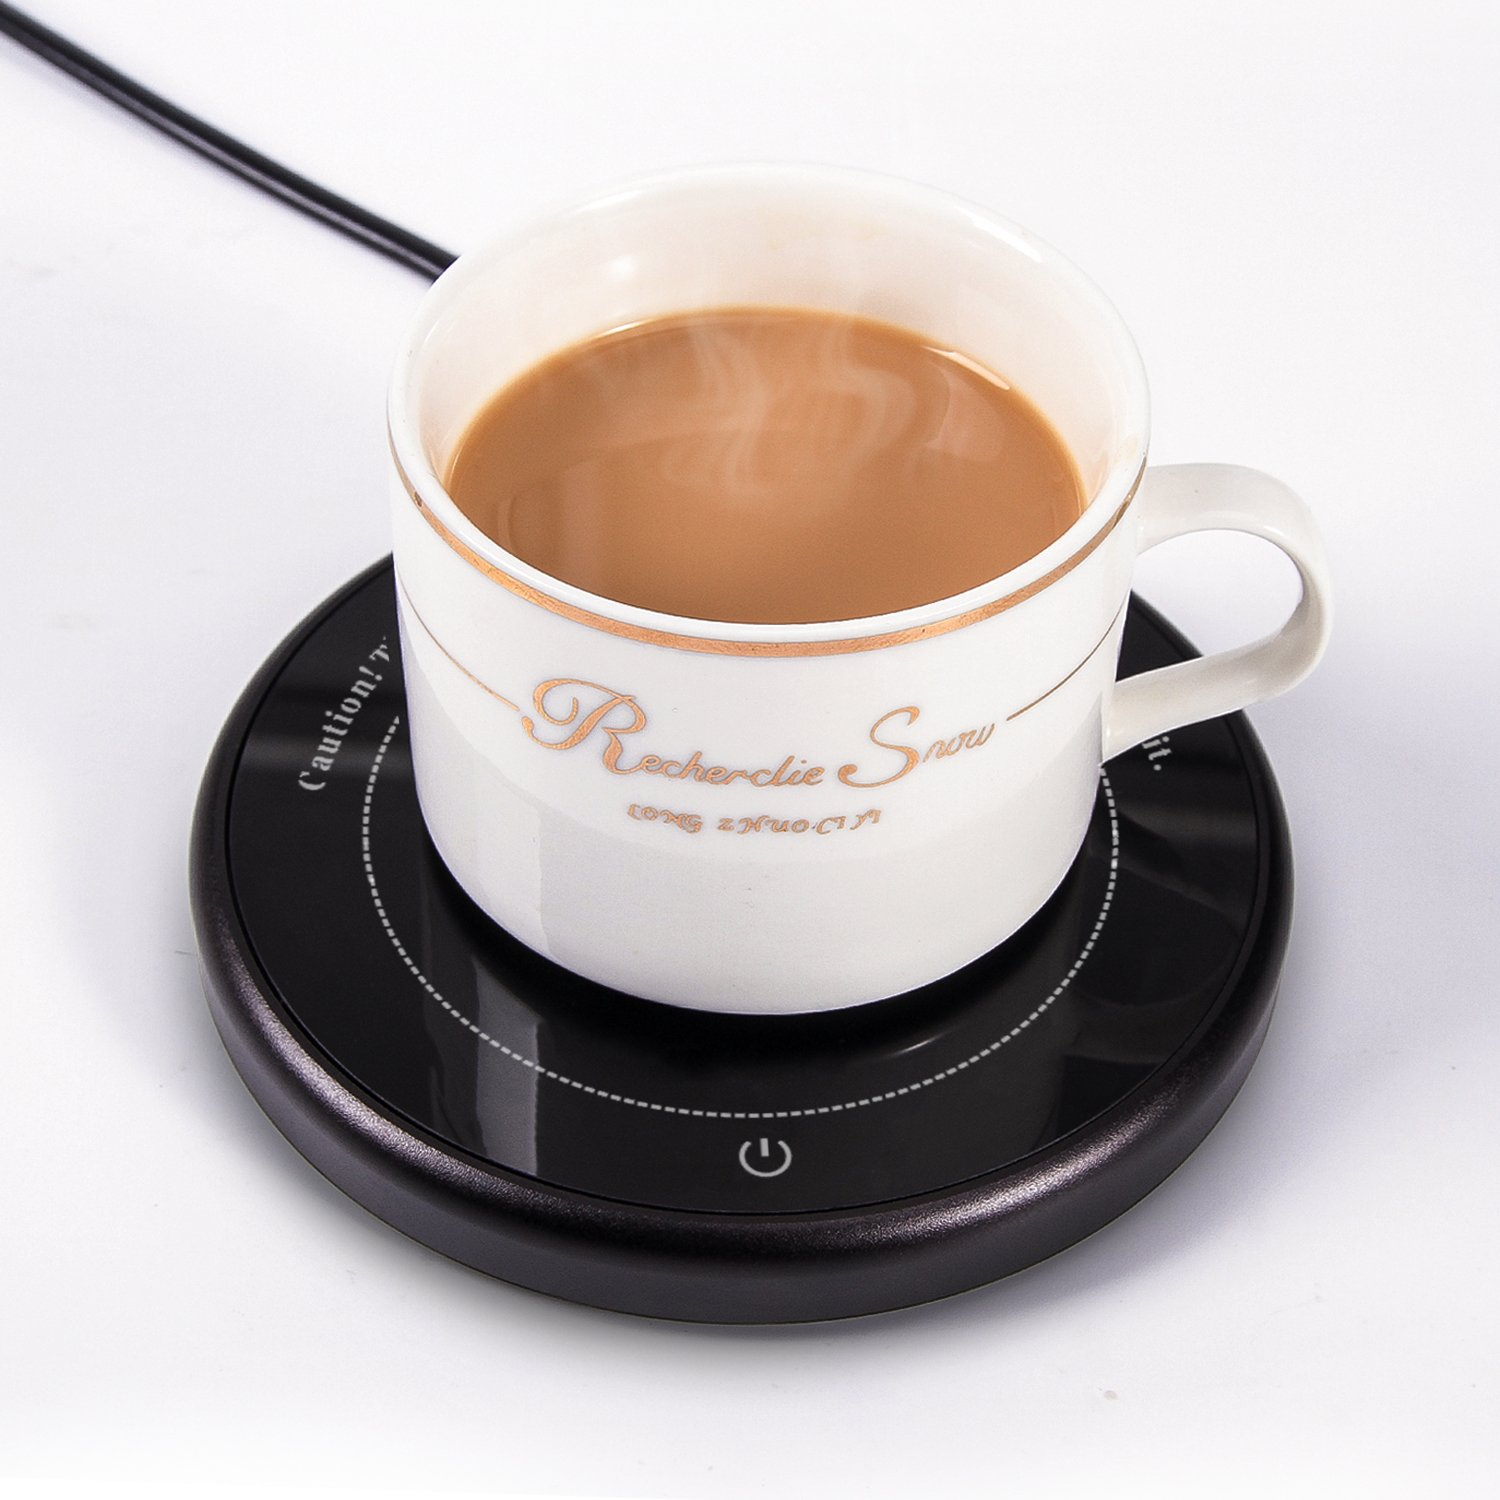 Coffee Mug Warmer Tea Milk Cocoa Electric Cup Beverage Plate Thermostatic Smart Cup Heater for Home Office Use 8h Auto Shut Off Coffee Beverage Warmer as Gift (Up to 131℉/55℃)